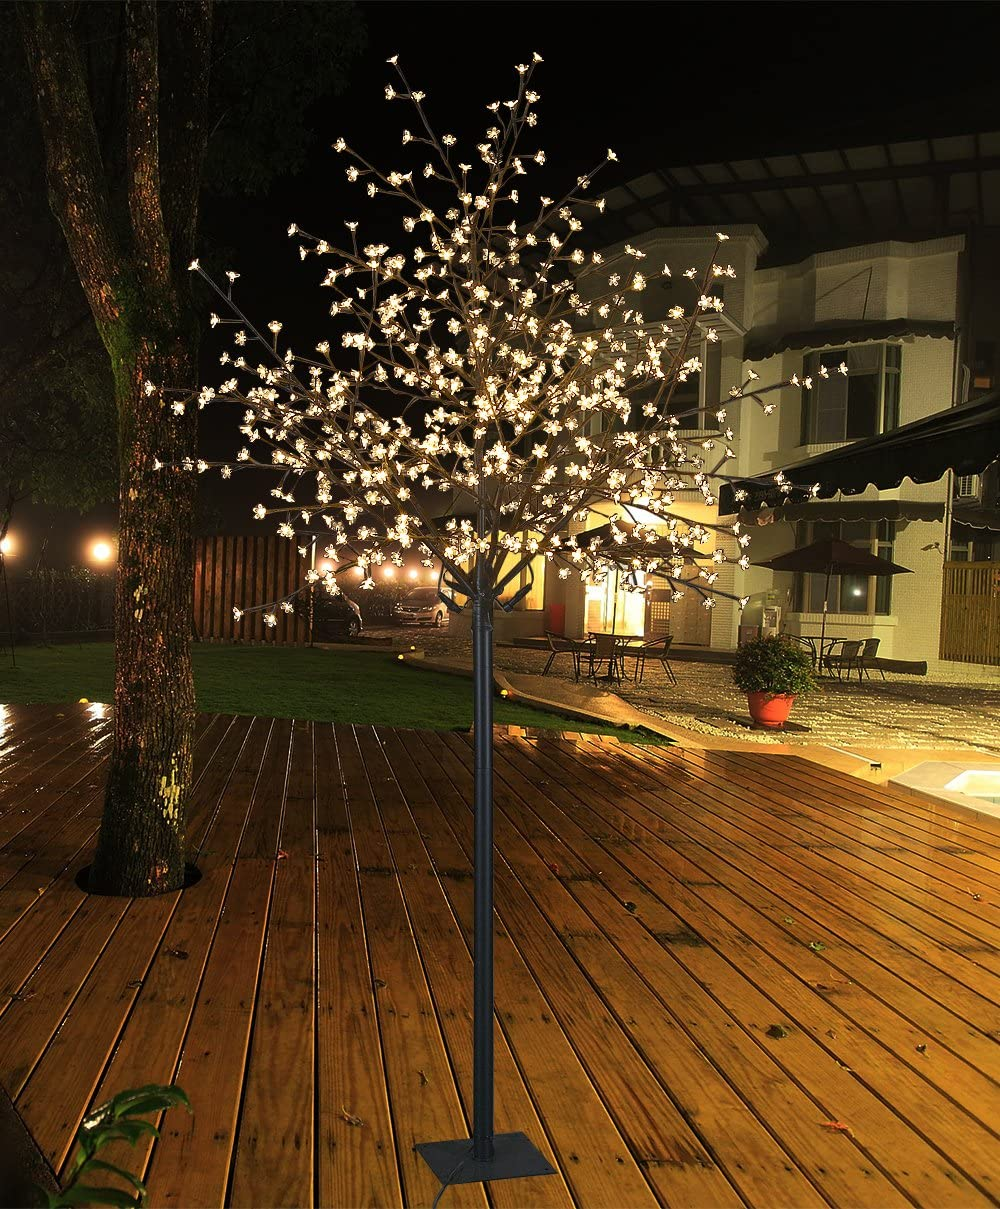 Lightshare 8Ft 600L LED Cherry Blossom City Tree, Home Garden City Decoration,Wedding,Birthday,Christmas,Festival,Party Indoor and Outdoor Use,Warm White